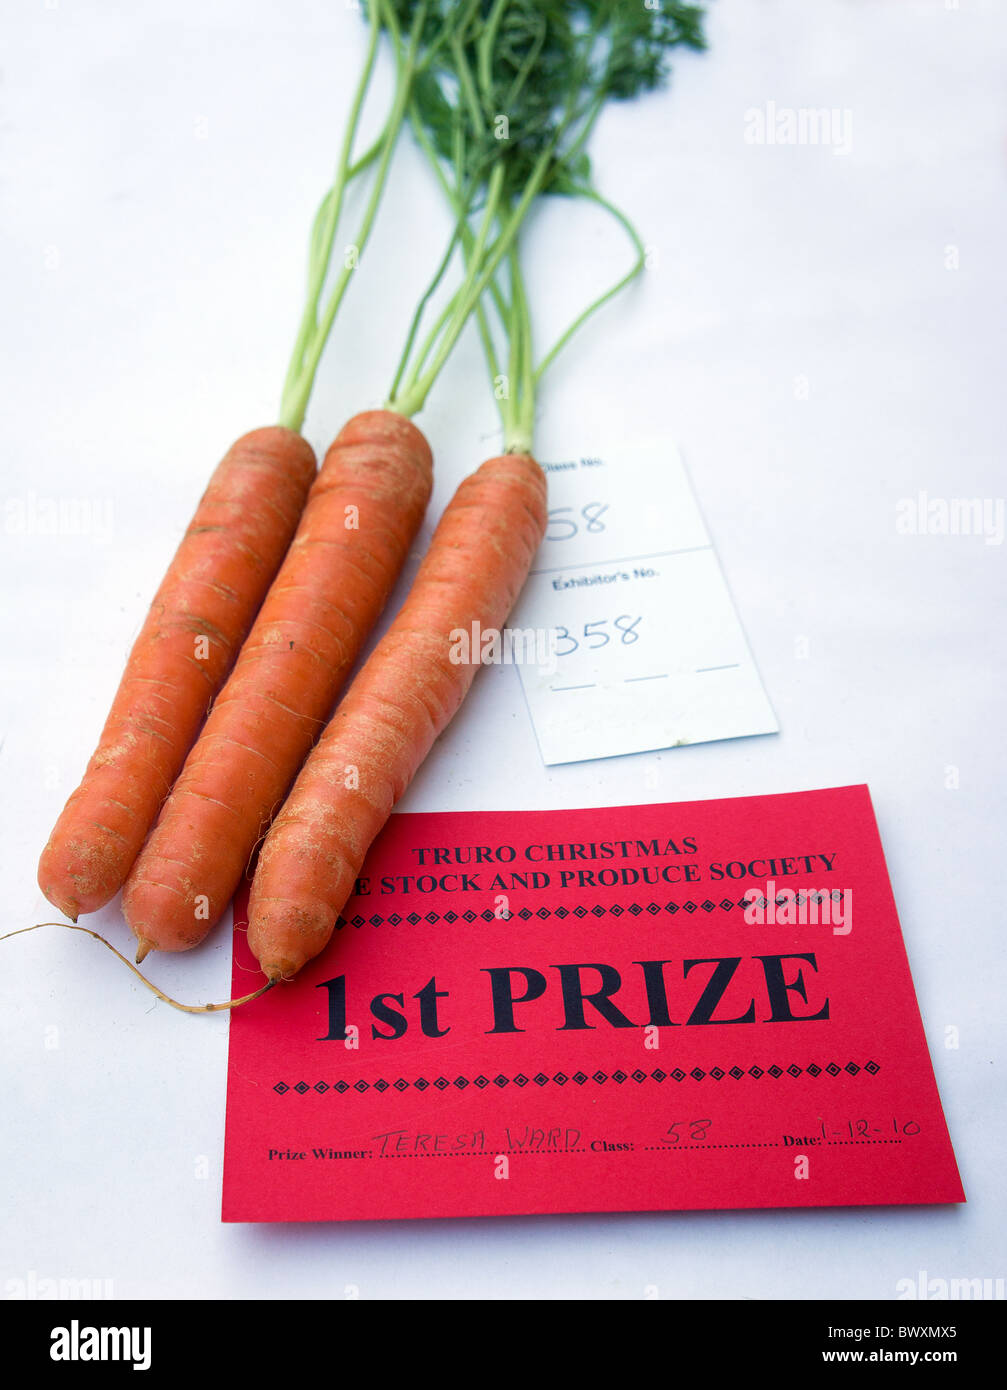 prize winning carrots at vegetable show - Stock Image